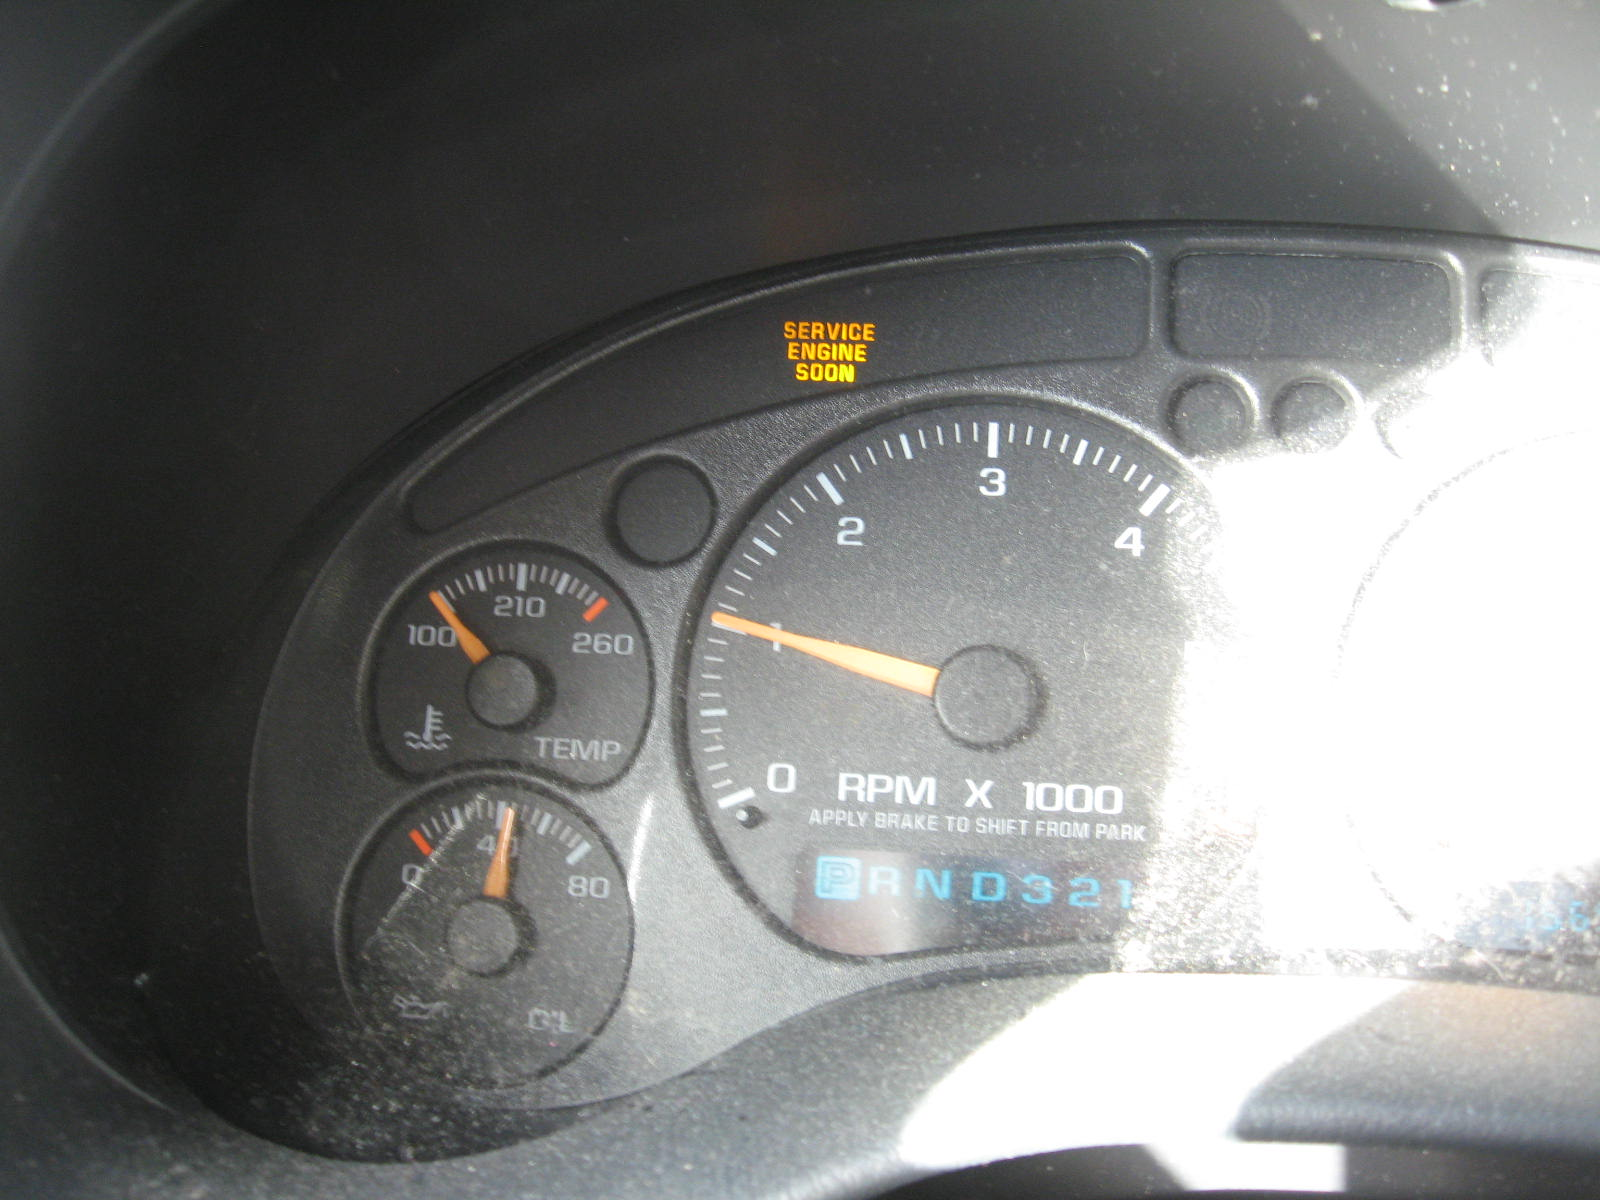 This 2002 Blazer service engine soon light came on indicating the computer  had stored an onboard diagnostic 2 (OBDII) trouble code.